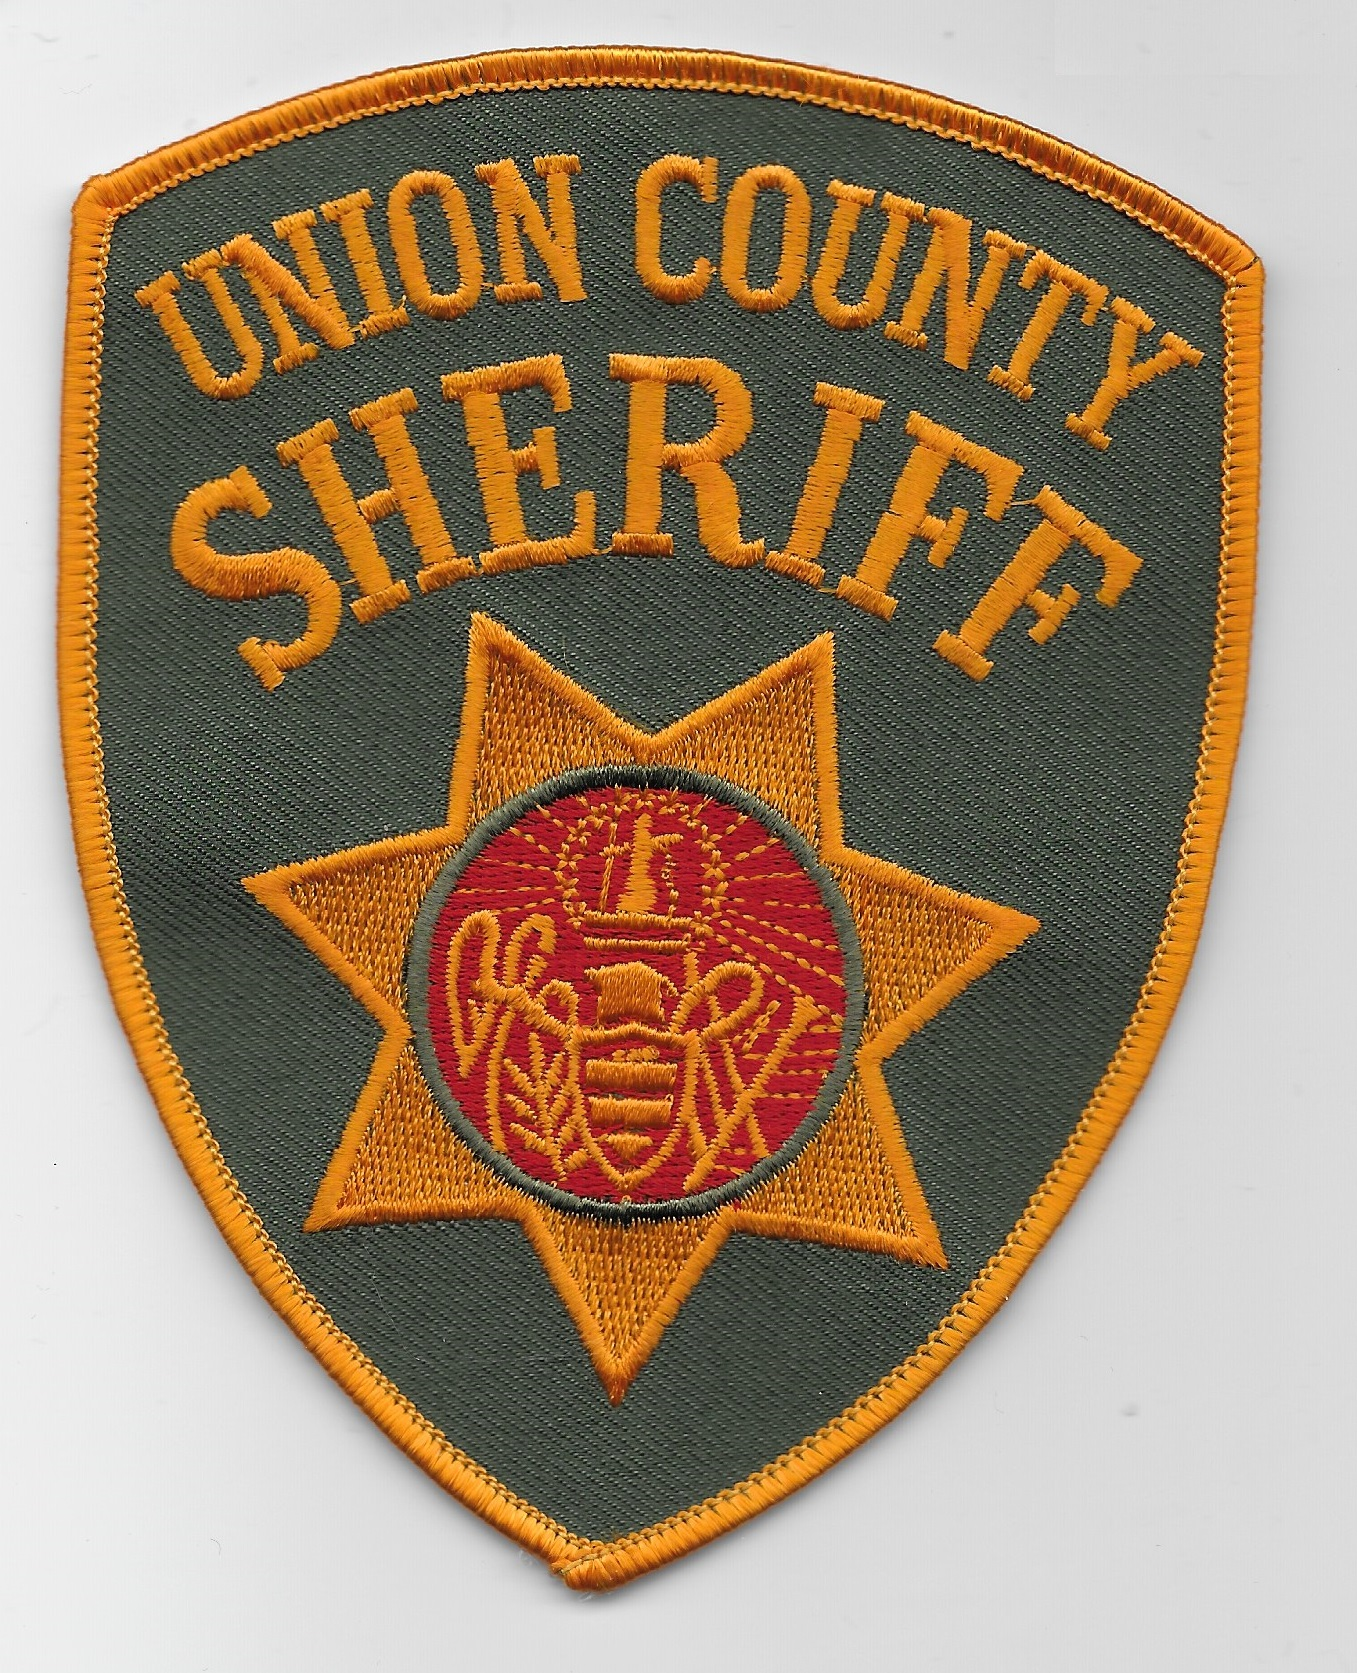 Union County Sheriff AR